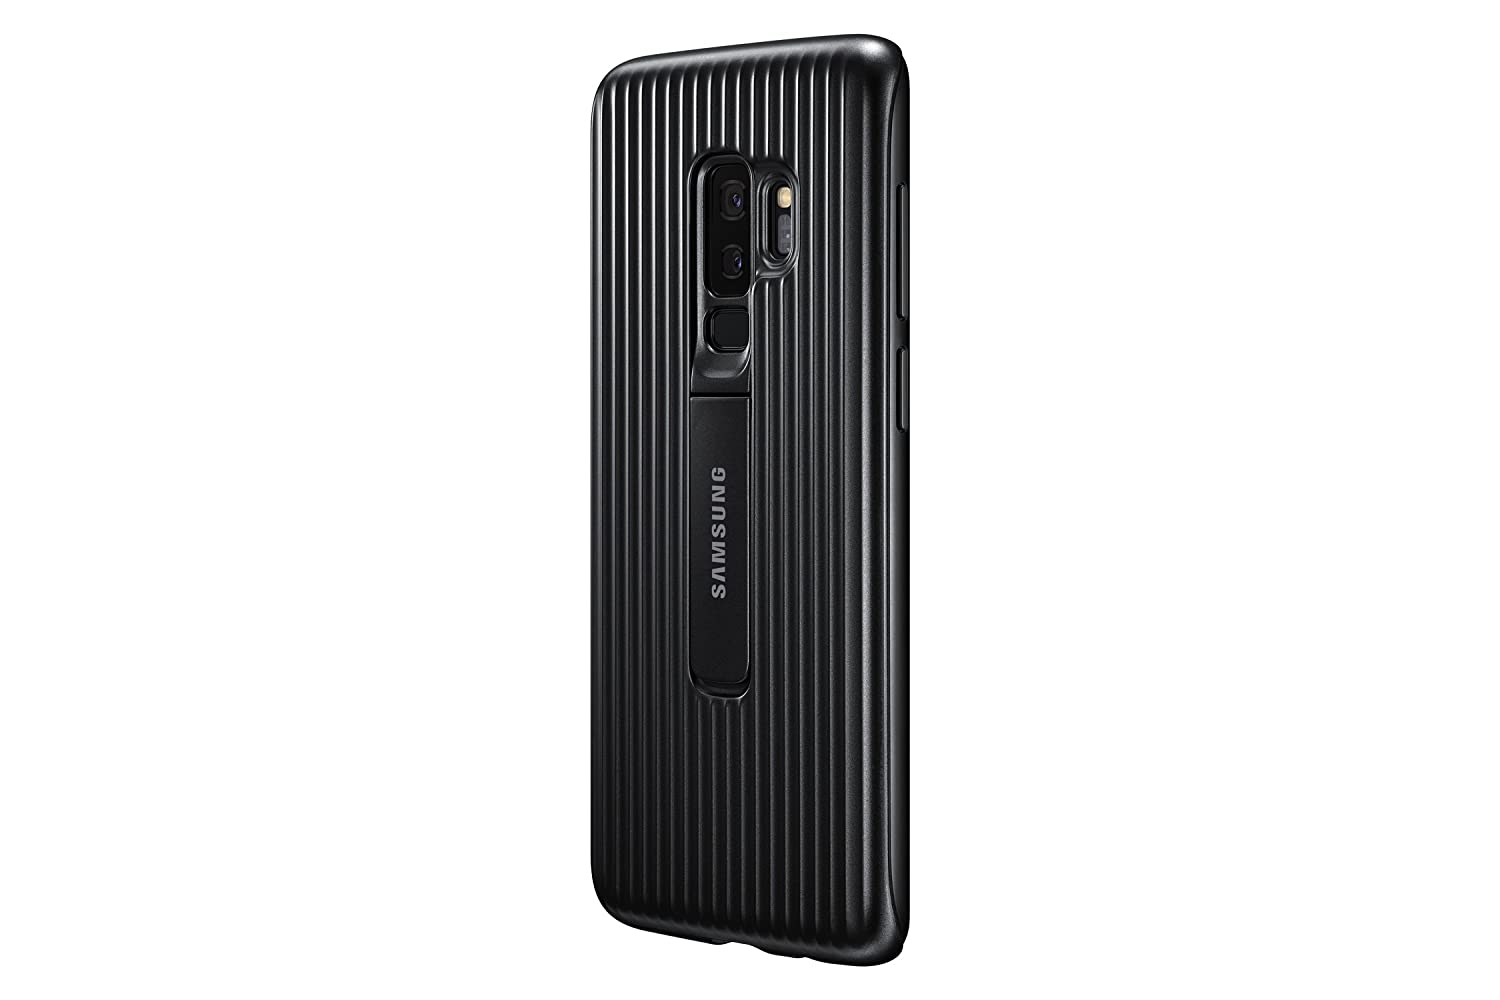 new product 6ae44 d97a9 Samsung Galaxy S9+ Protective Standing Cover, Black (EF-RG965CBEGCA)  [Canadian Version]